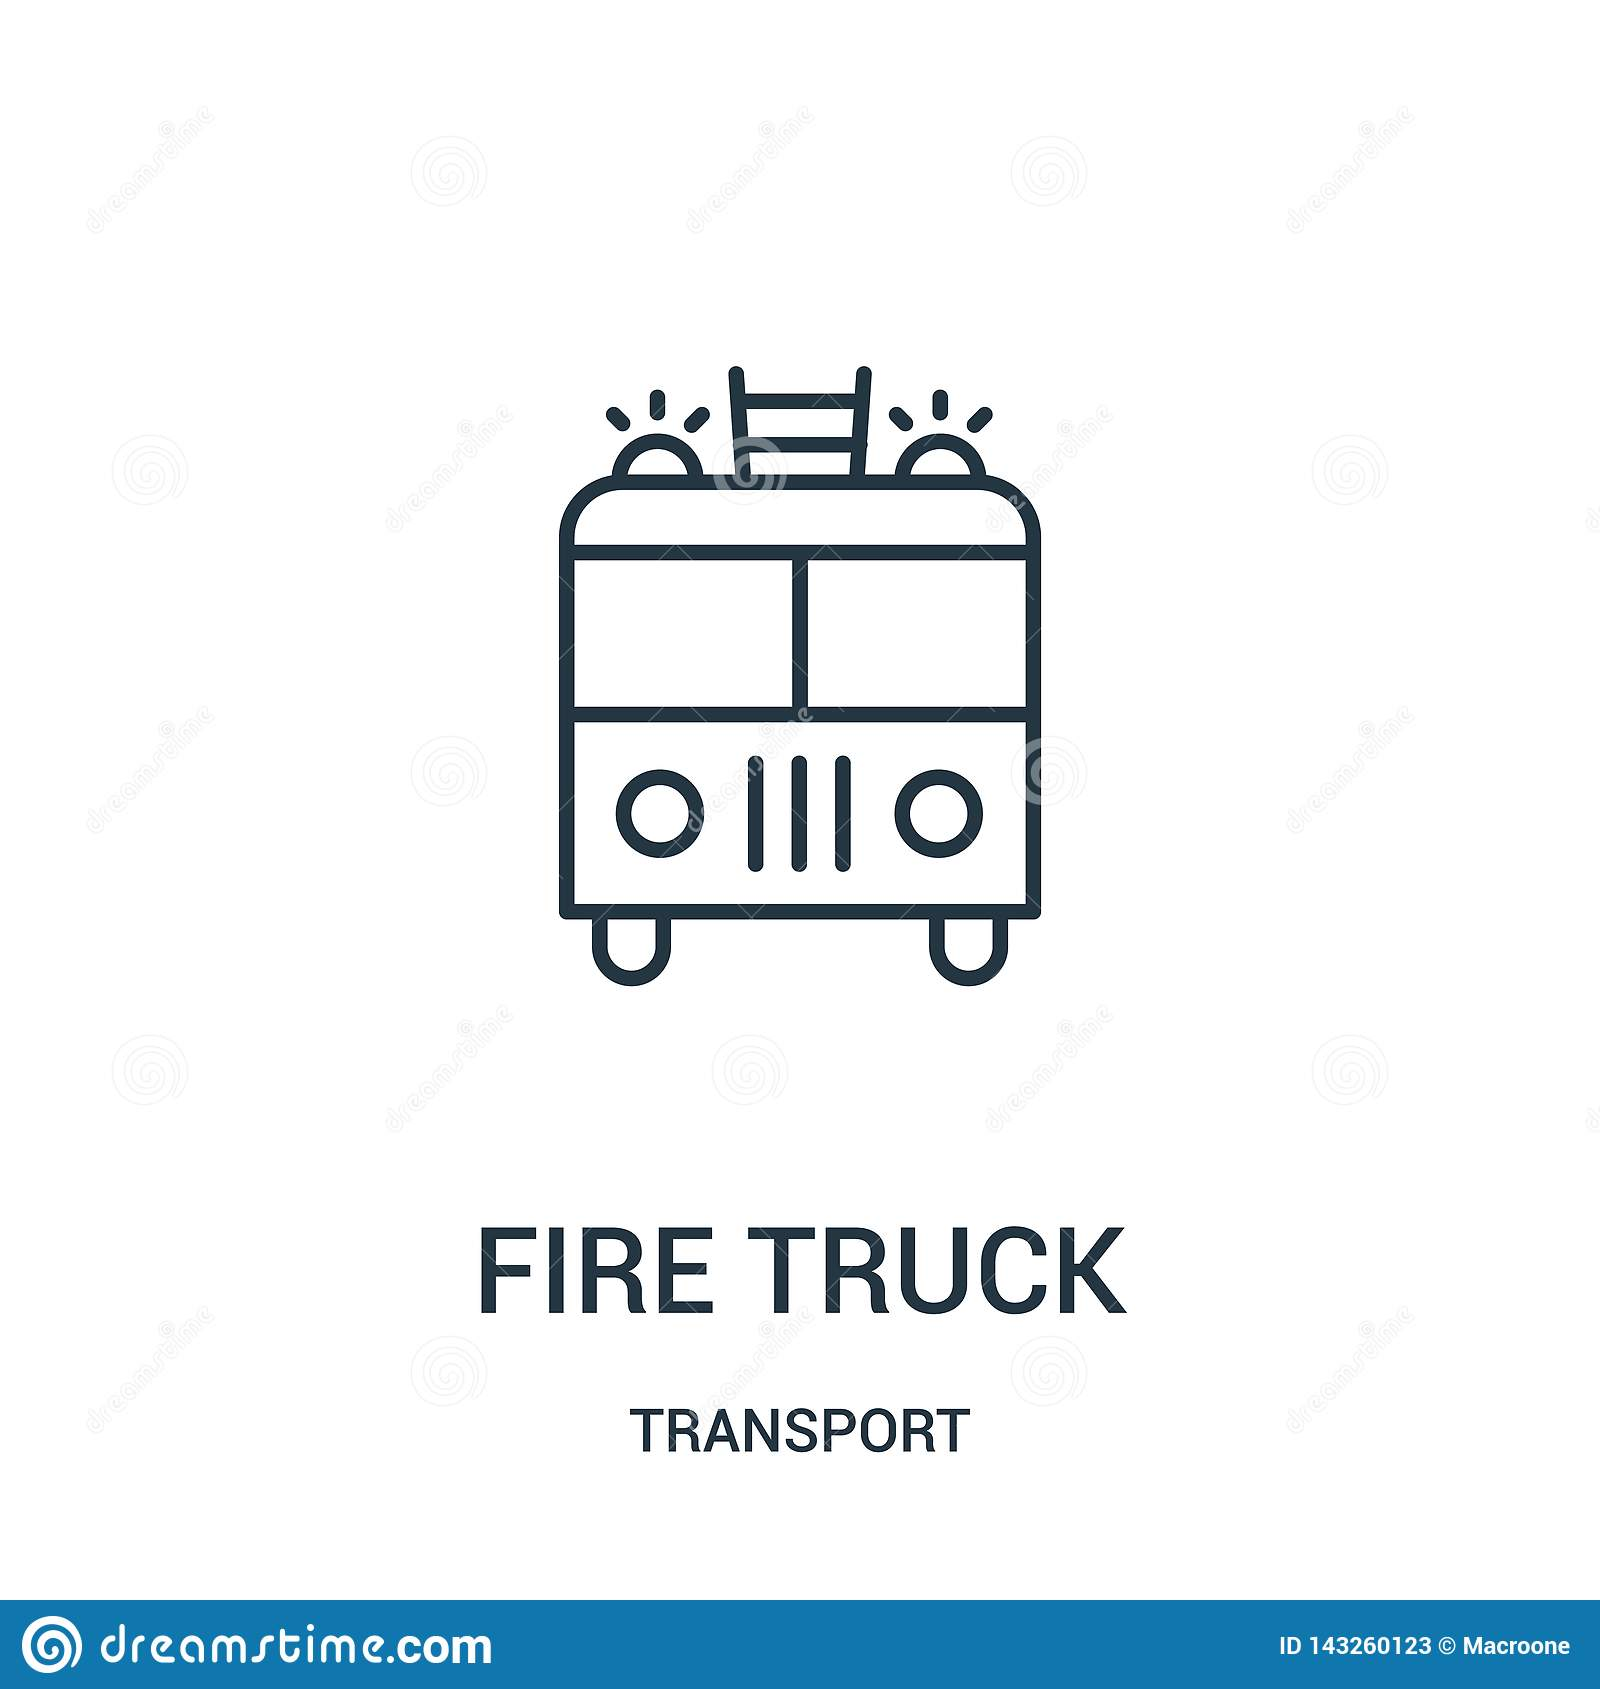 fire truck icon vector from transport collection. Thin line fire truck outline icon vector illustration